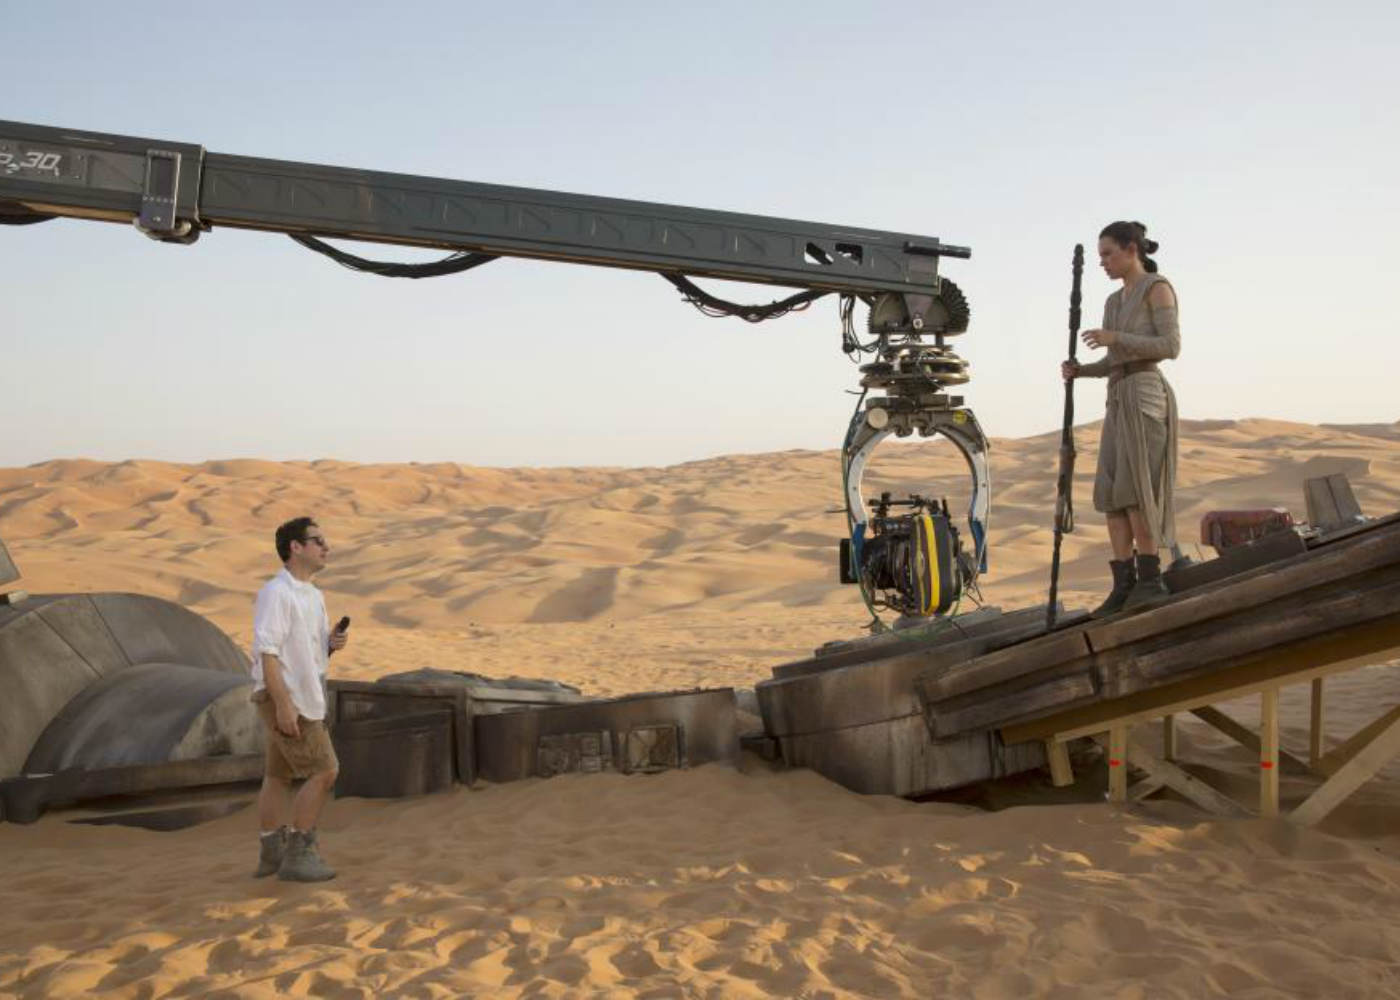 J.J. Abrams Comes Full Circle to Write and Direct Star Wars: Episode IX